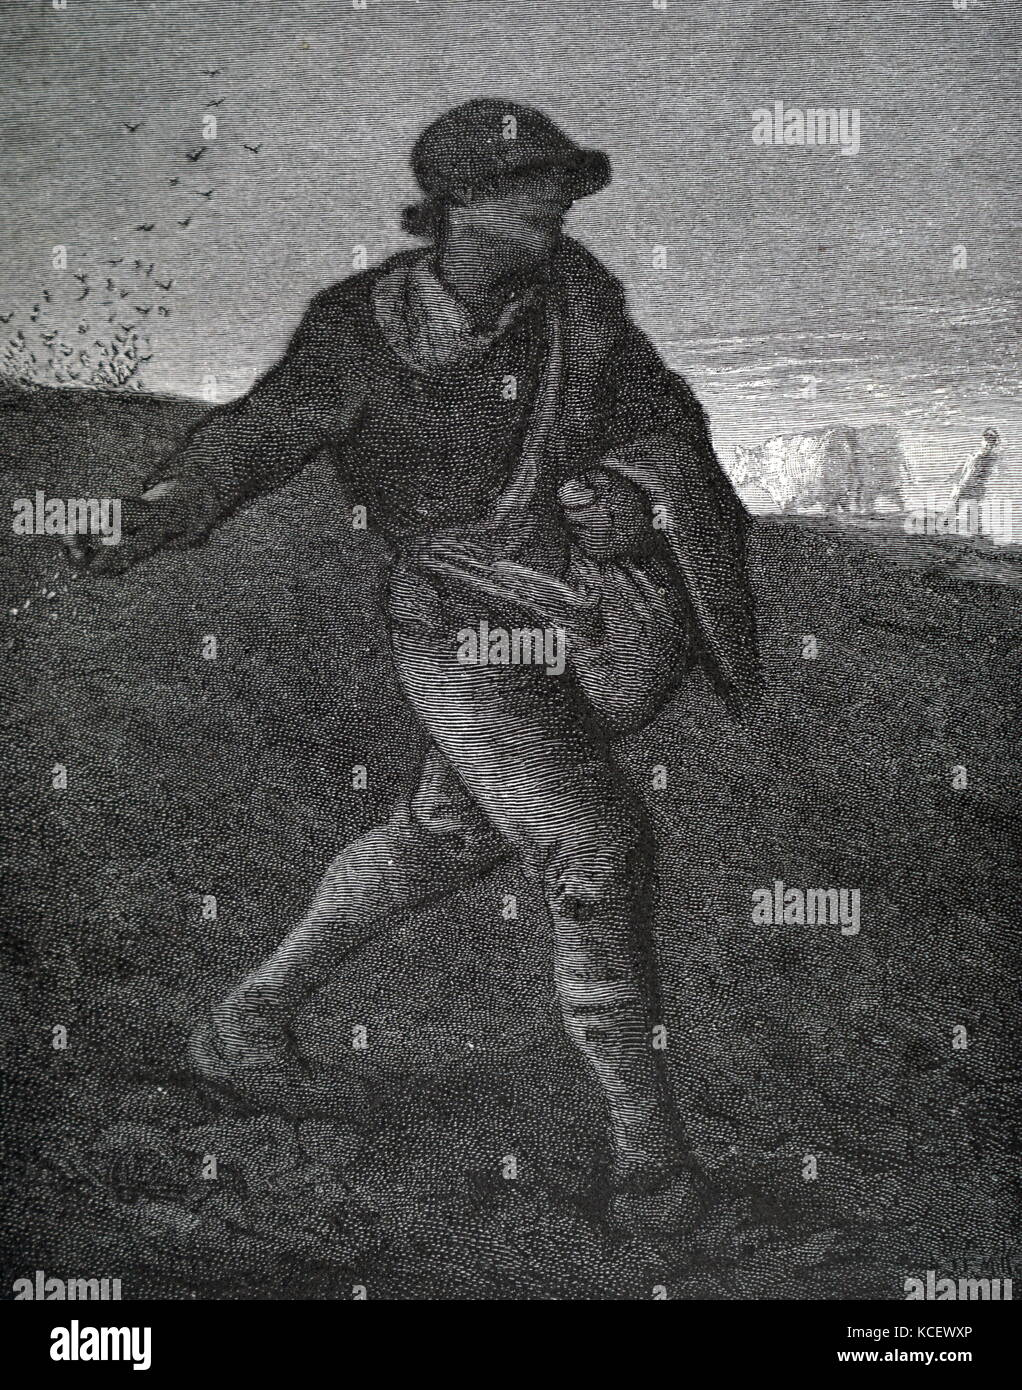 Print of the painting titled 'The Sower' by Jean-François Millet (1814-1875) a French painter and one - Stock Image